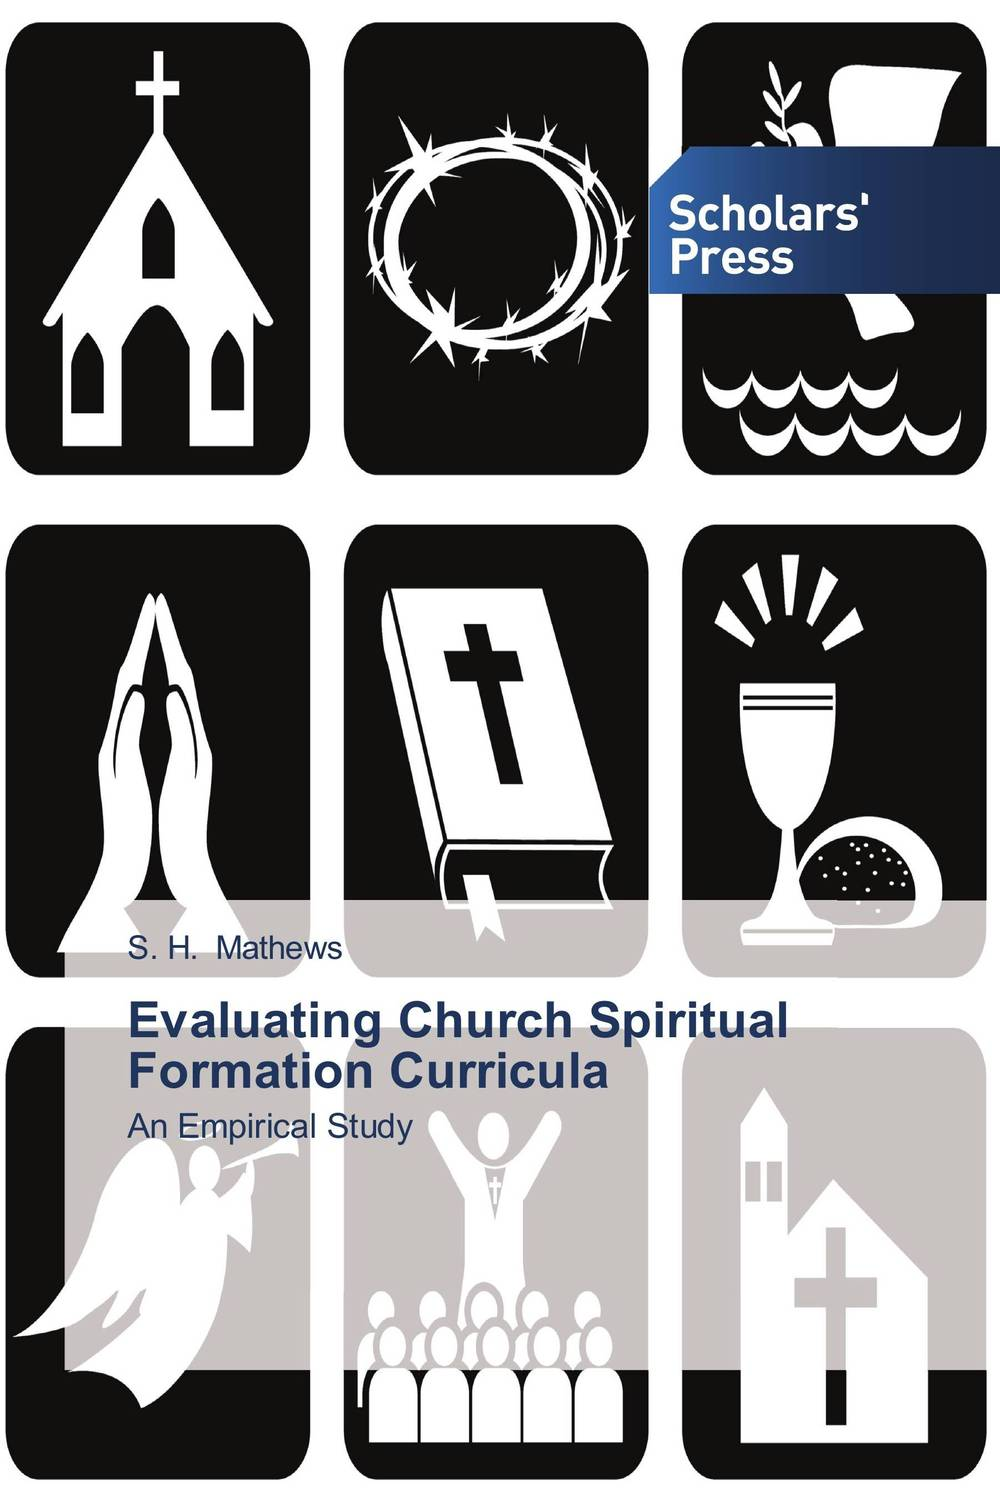 Evaluating Church Spiritual Formation Curricula foundations of cyclopean perception